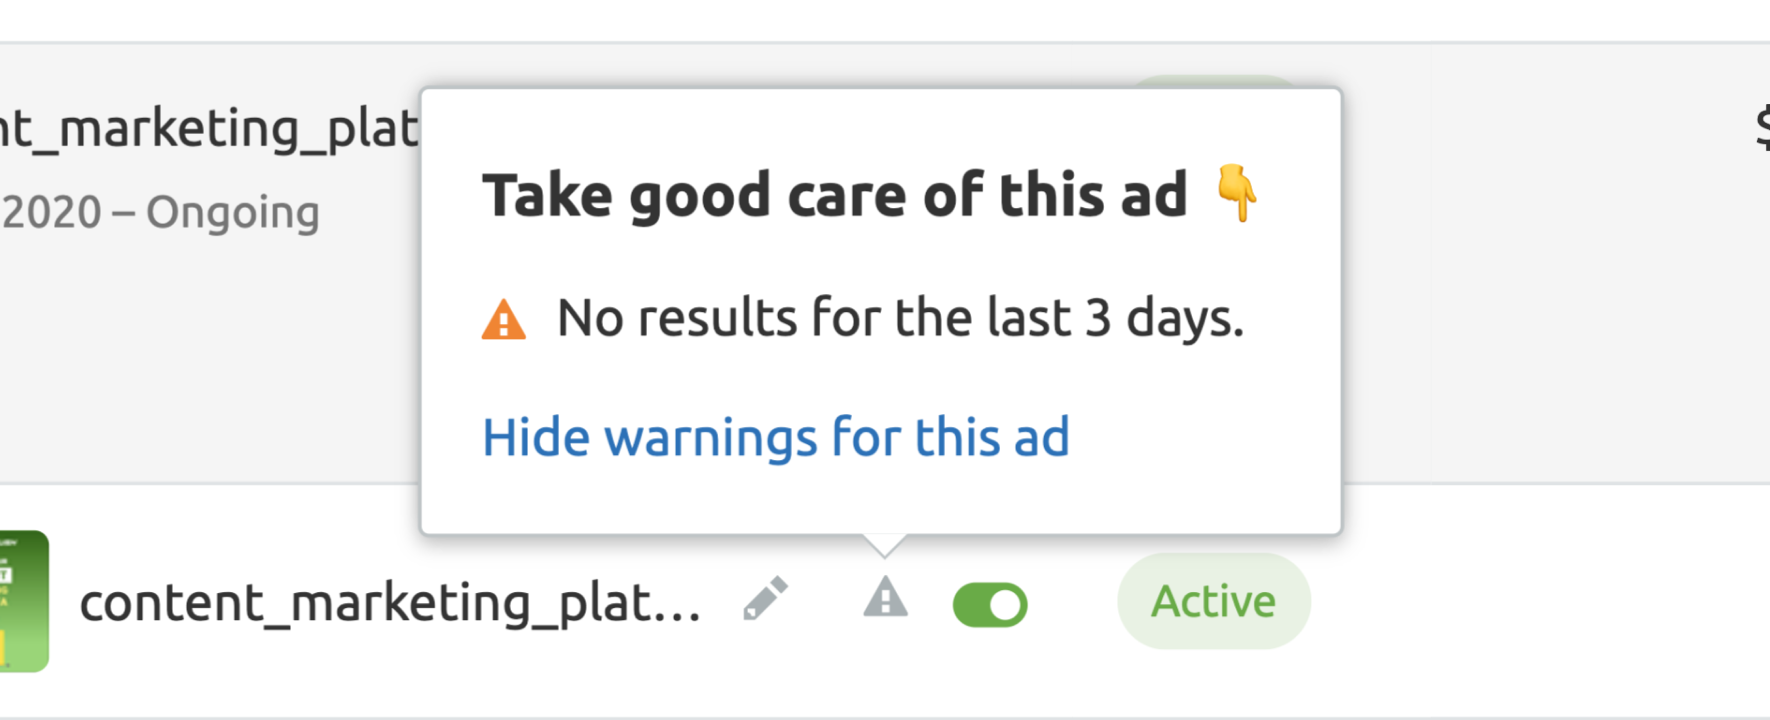 Facebook ads issues - No results for the last 3 days